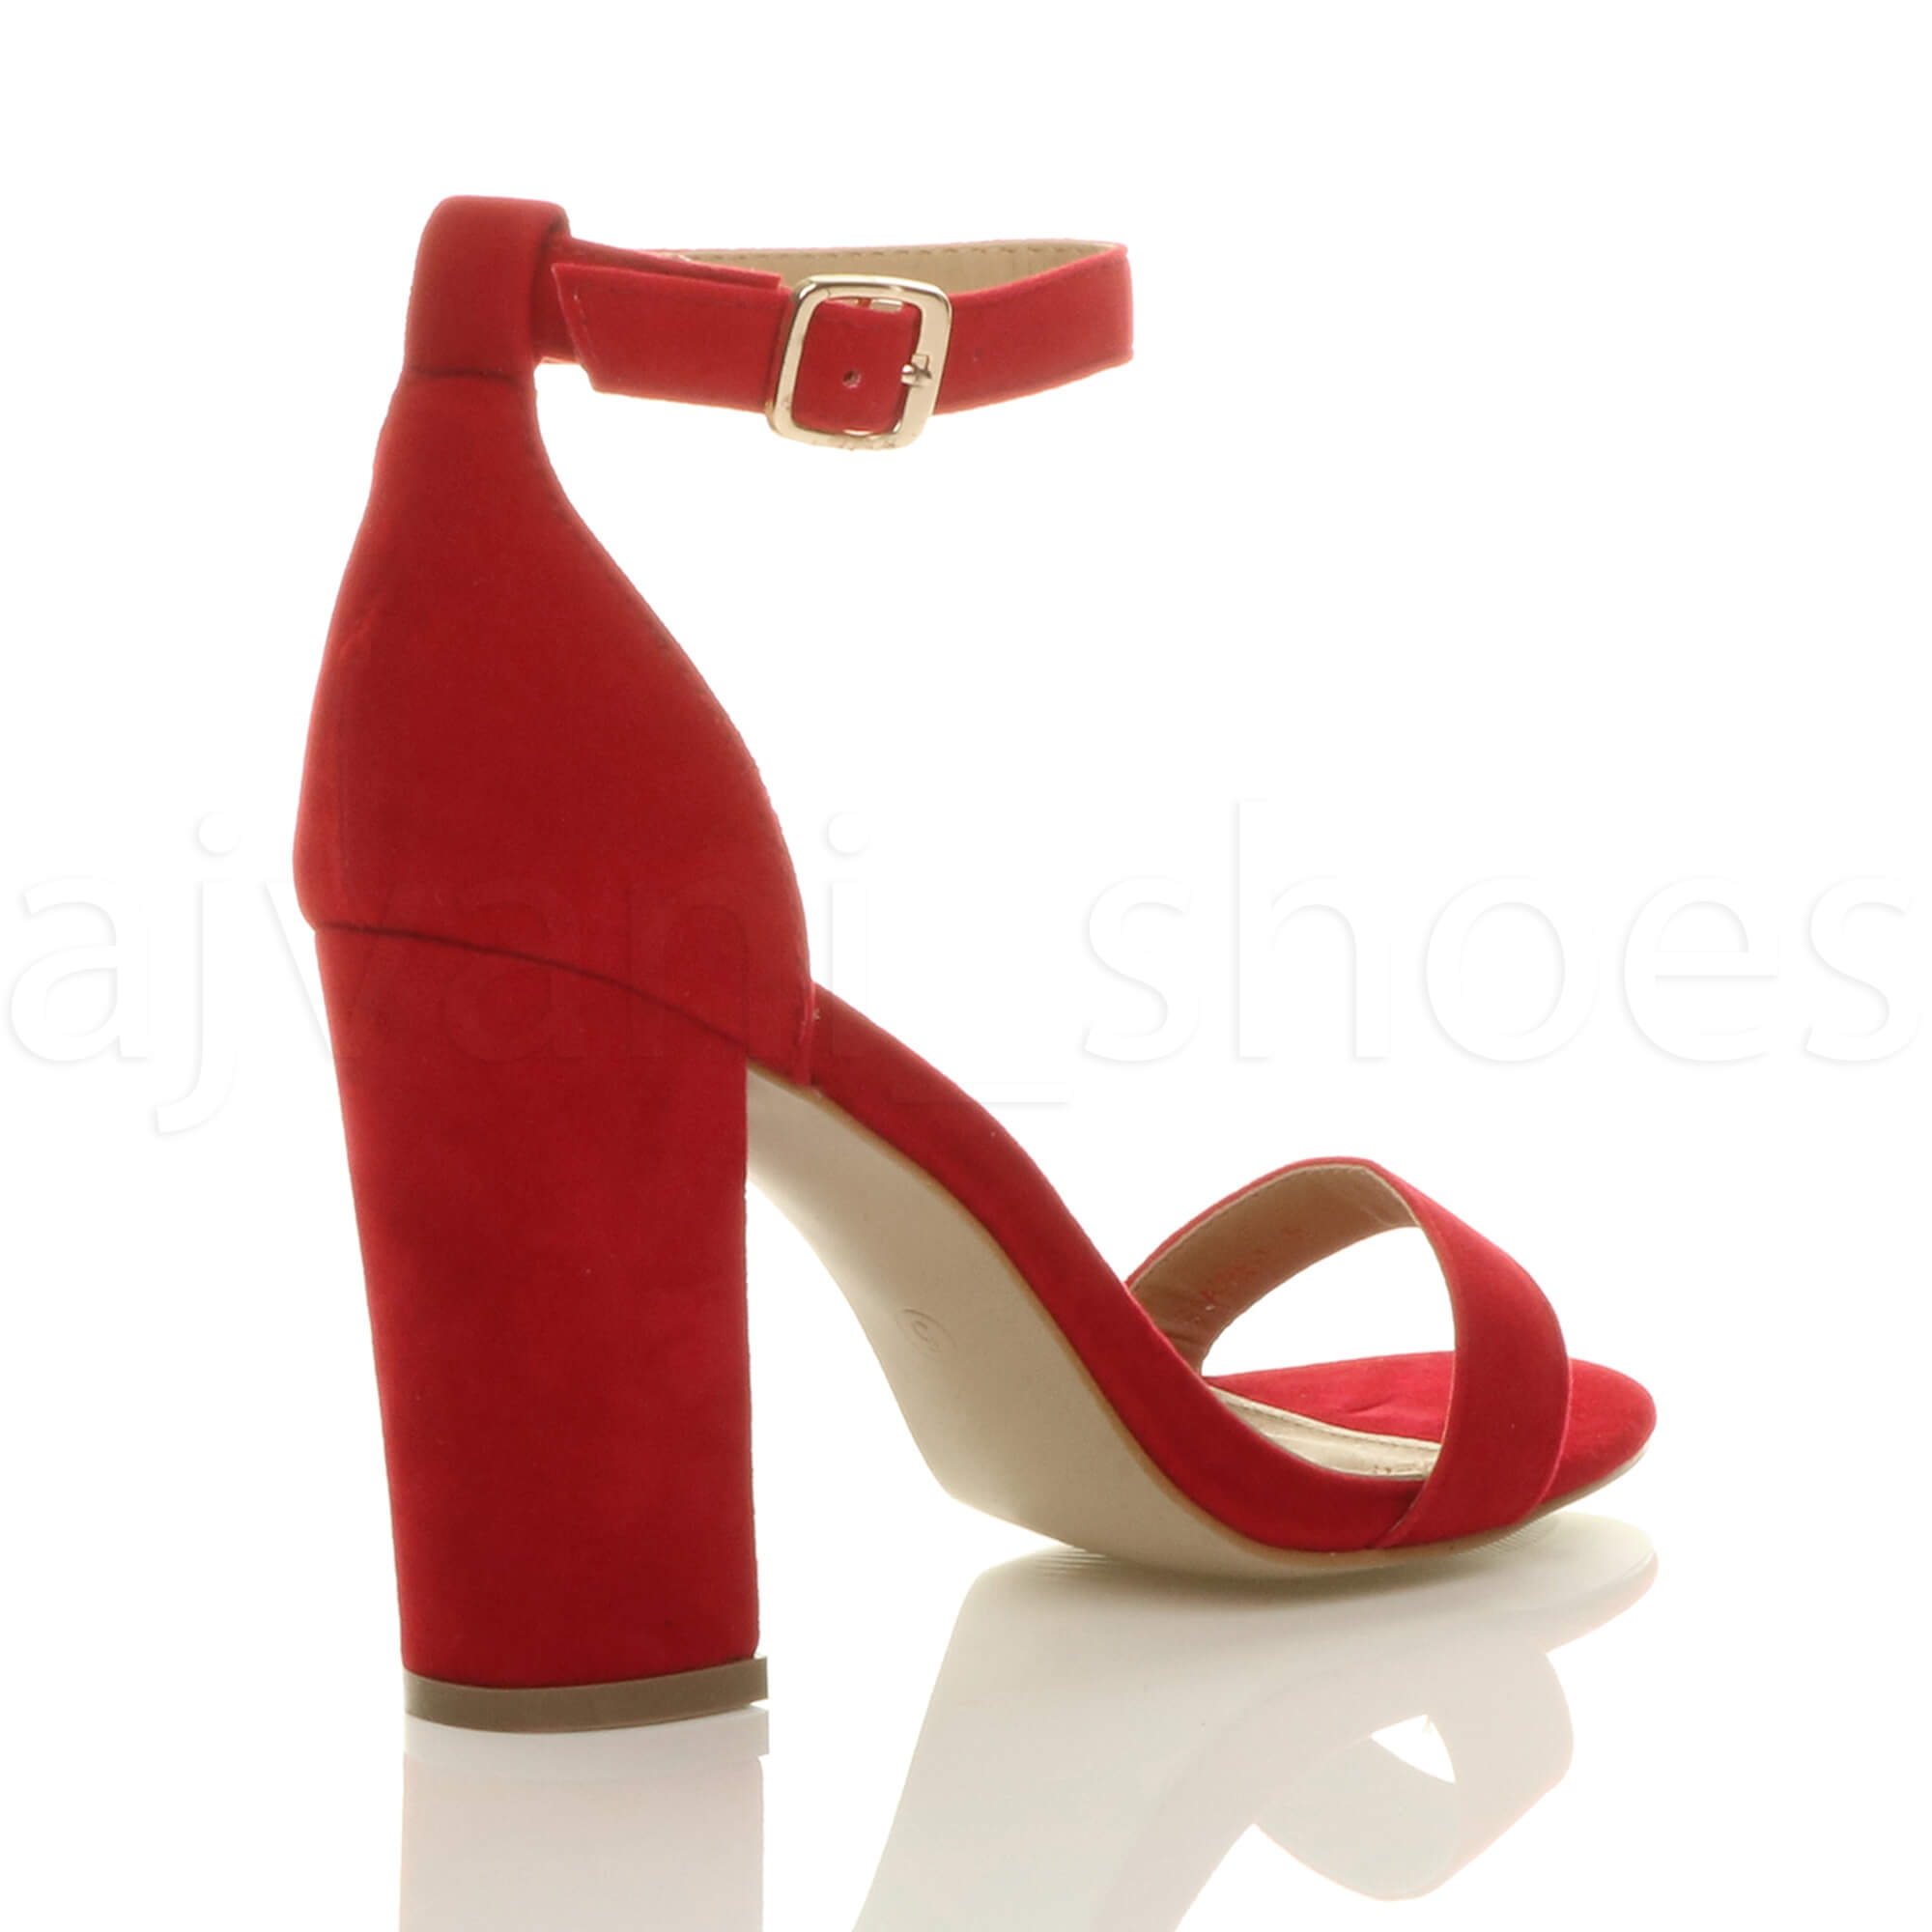 WOMENS-LADIES-BLOCK-HIGH-HEEL-ANKLE-STRAP-PEEP-TOE-STRAPPY-SANDALS-SHOES-SIZE thumbnail 119